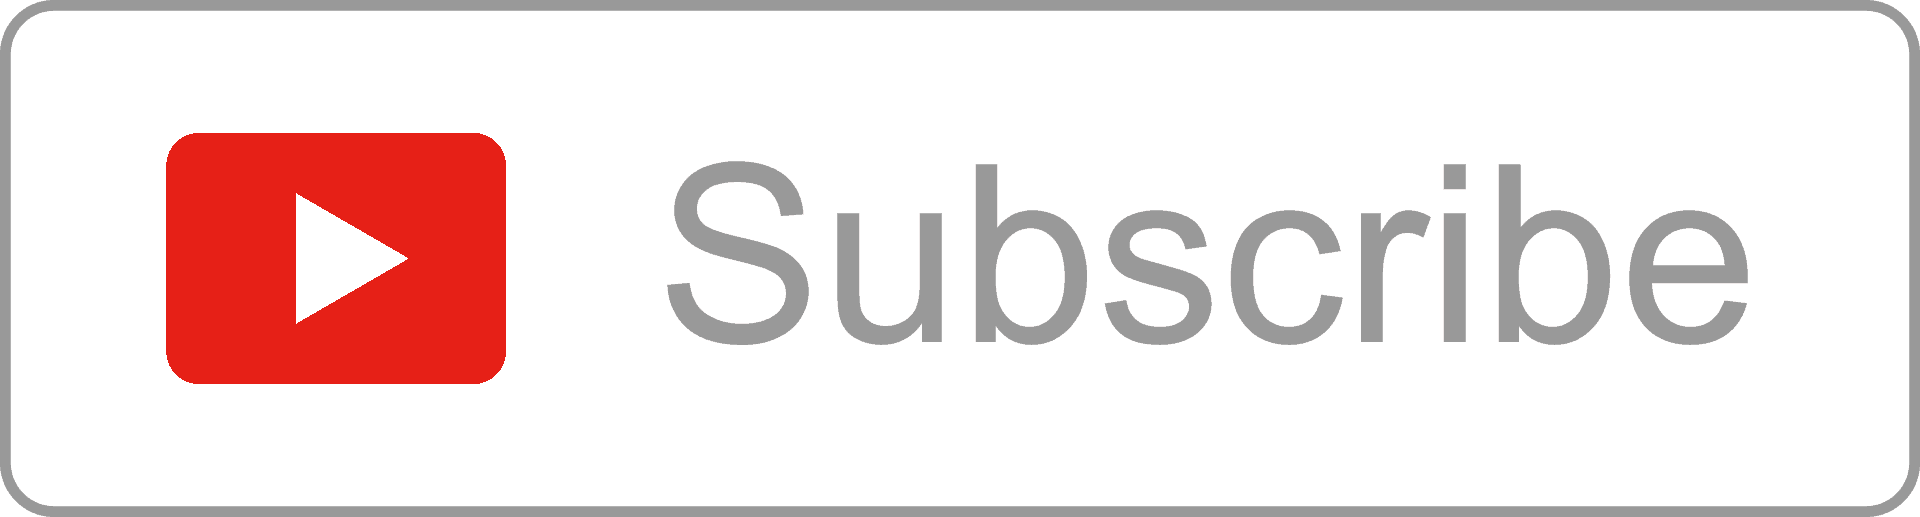 Youtube subscribe button 2016 png. Free outline by alfredocreates